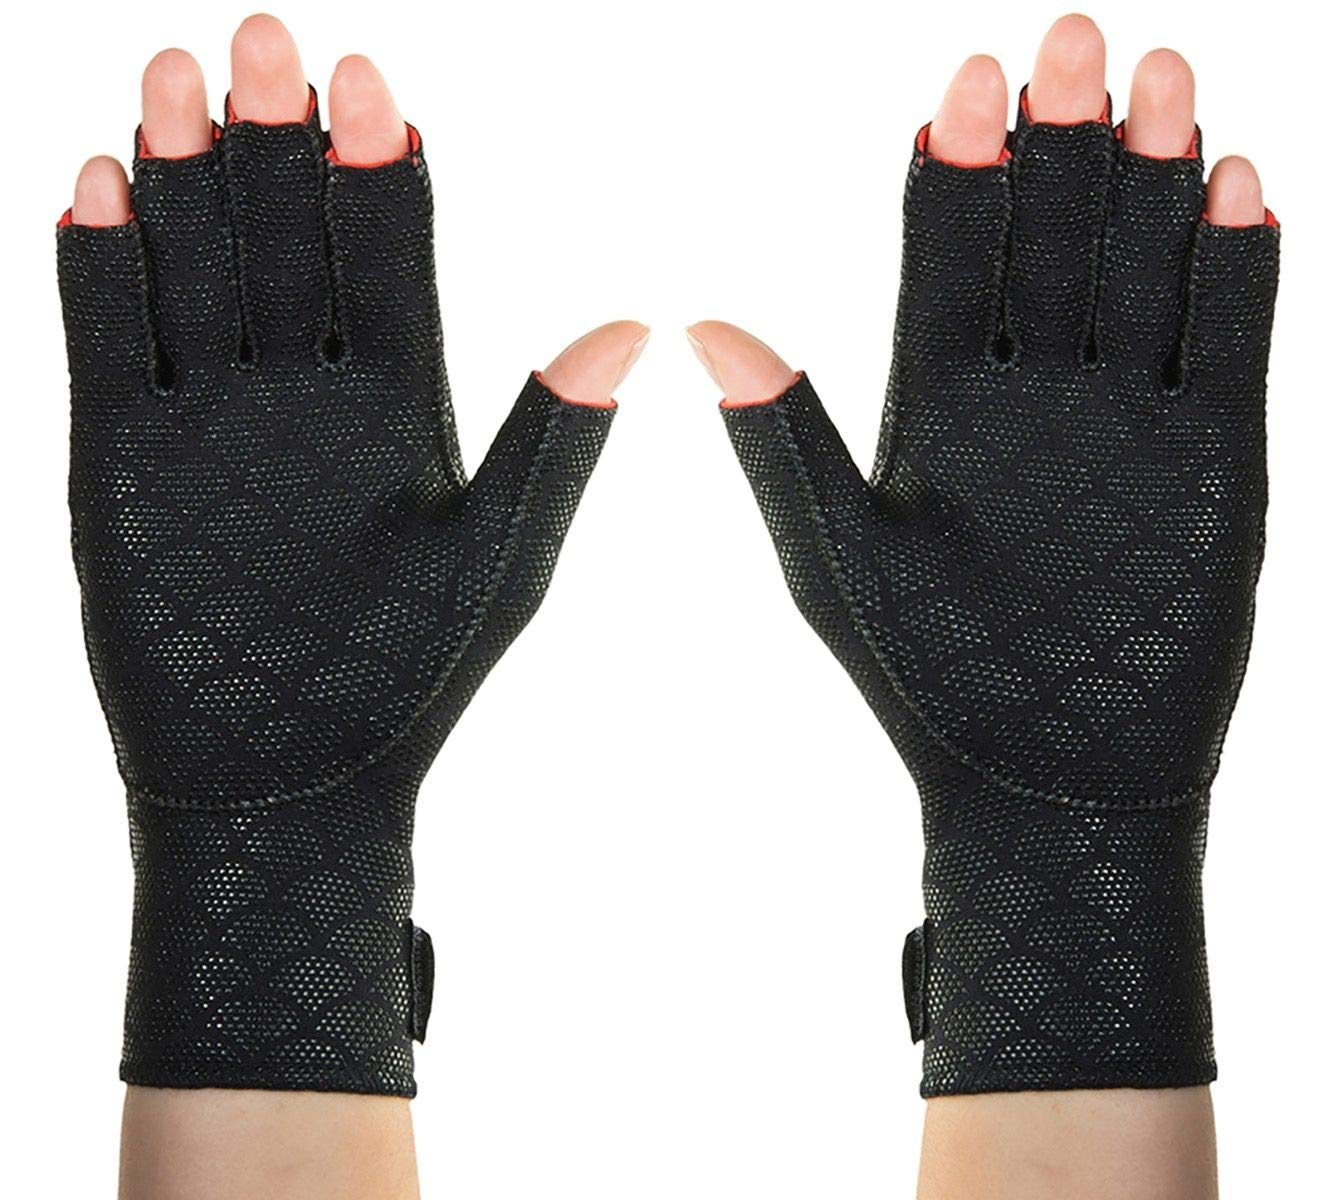 Thermoskin Arthritic Fingerless Gloves, Black, X-Small